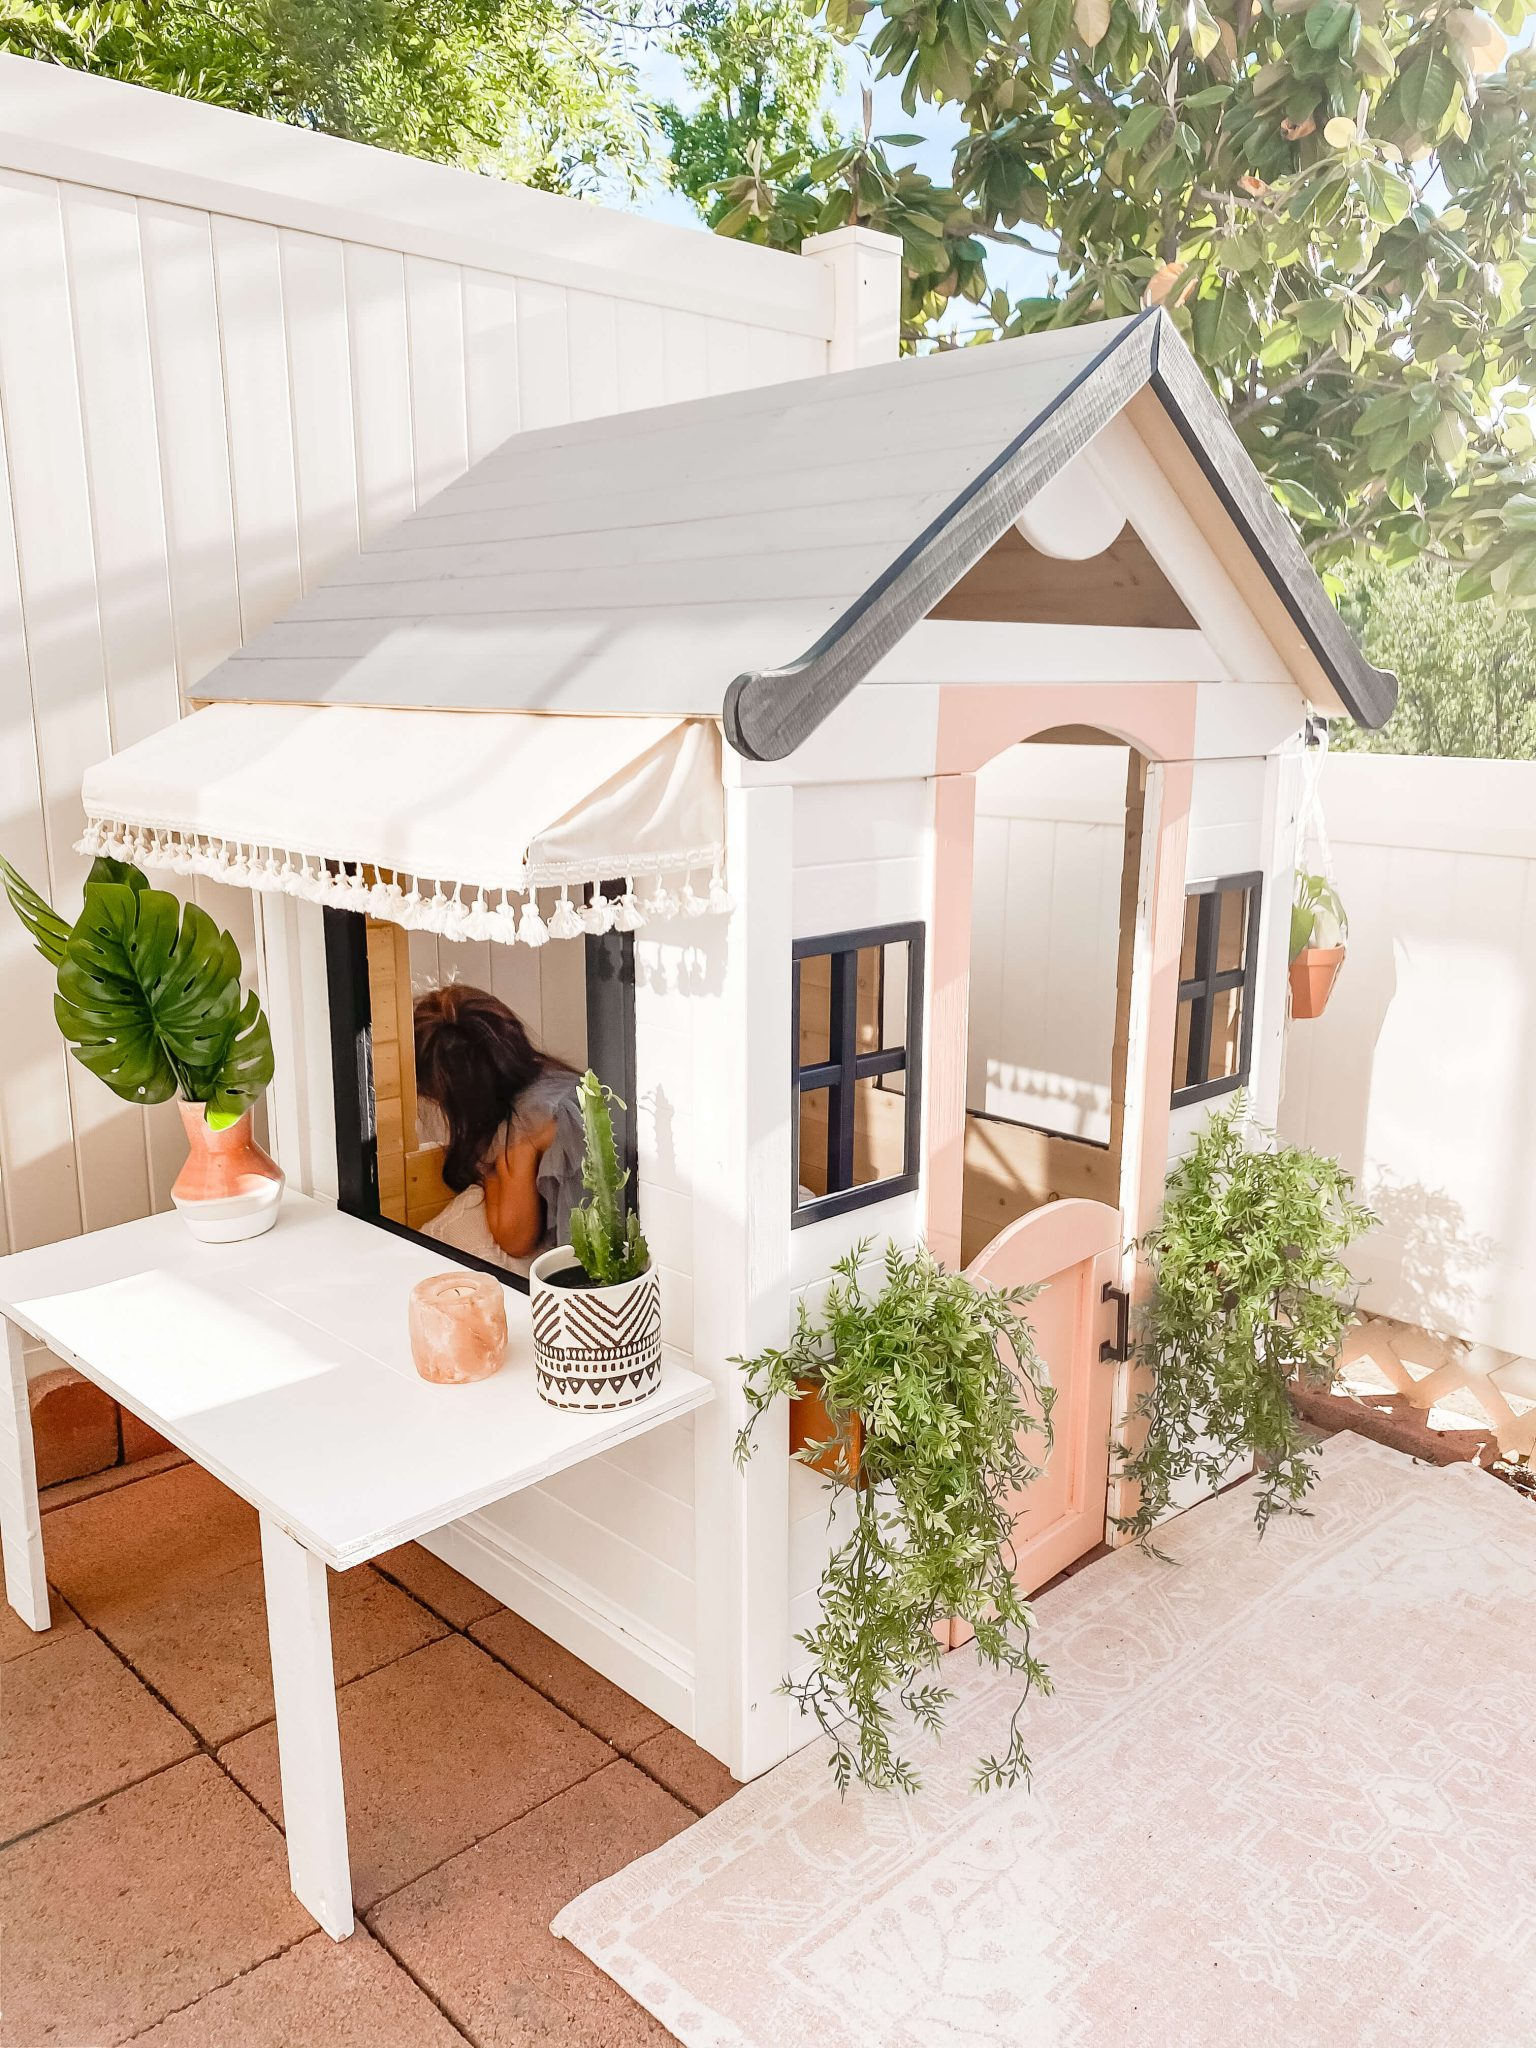 dainty playhouse for kids